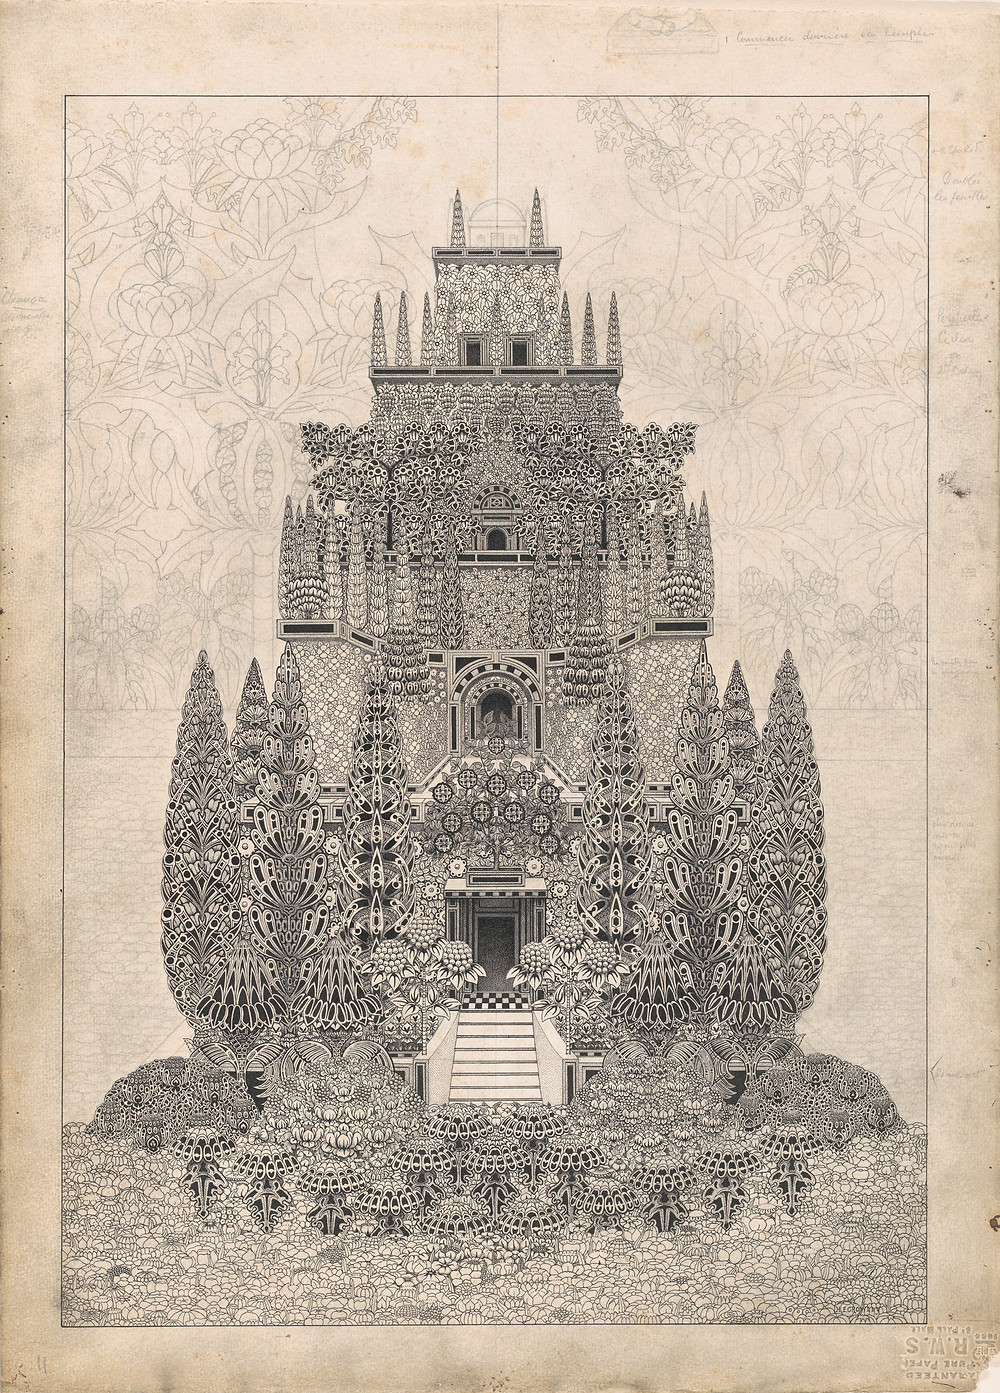 Herbert E. Crowley (British, London 1873–1939 Zurich) A Tiered Fantastic Structure, 1911–24 American, British, Black ink and graphite; Image: 18 5/16 × 12 7/8 in. (46.5 × 32.7 cm) Sheet: 20 11/16 × 14 7/8 in. (52.5 × 37.8 cm) The Metropolitan Museum of Art, New York, Gift of Mrs. Alice Lewisohn Crowley, 1946 (46.128.100) http://www.metmuseum.org/Collections/search-the-collections/412783